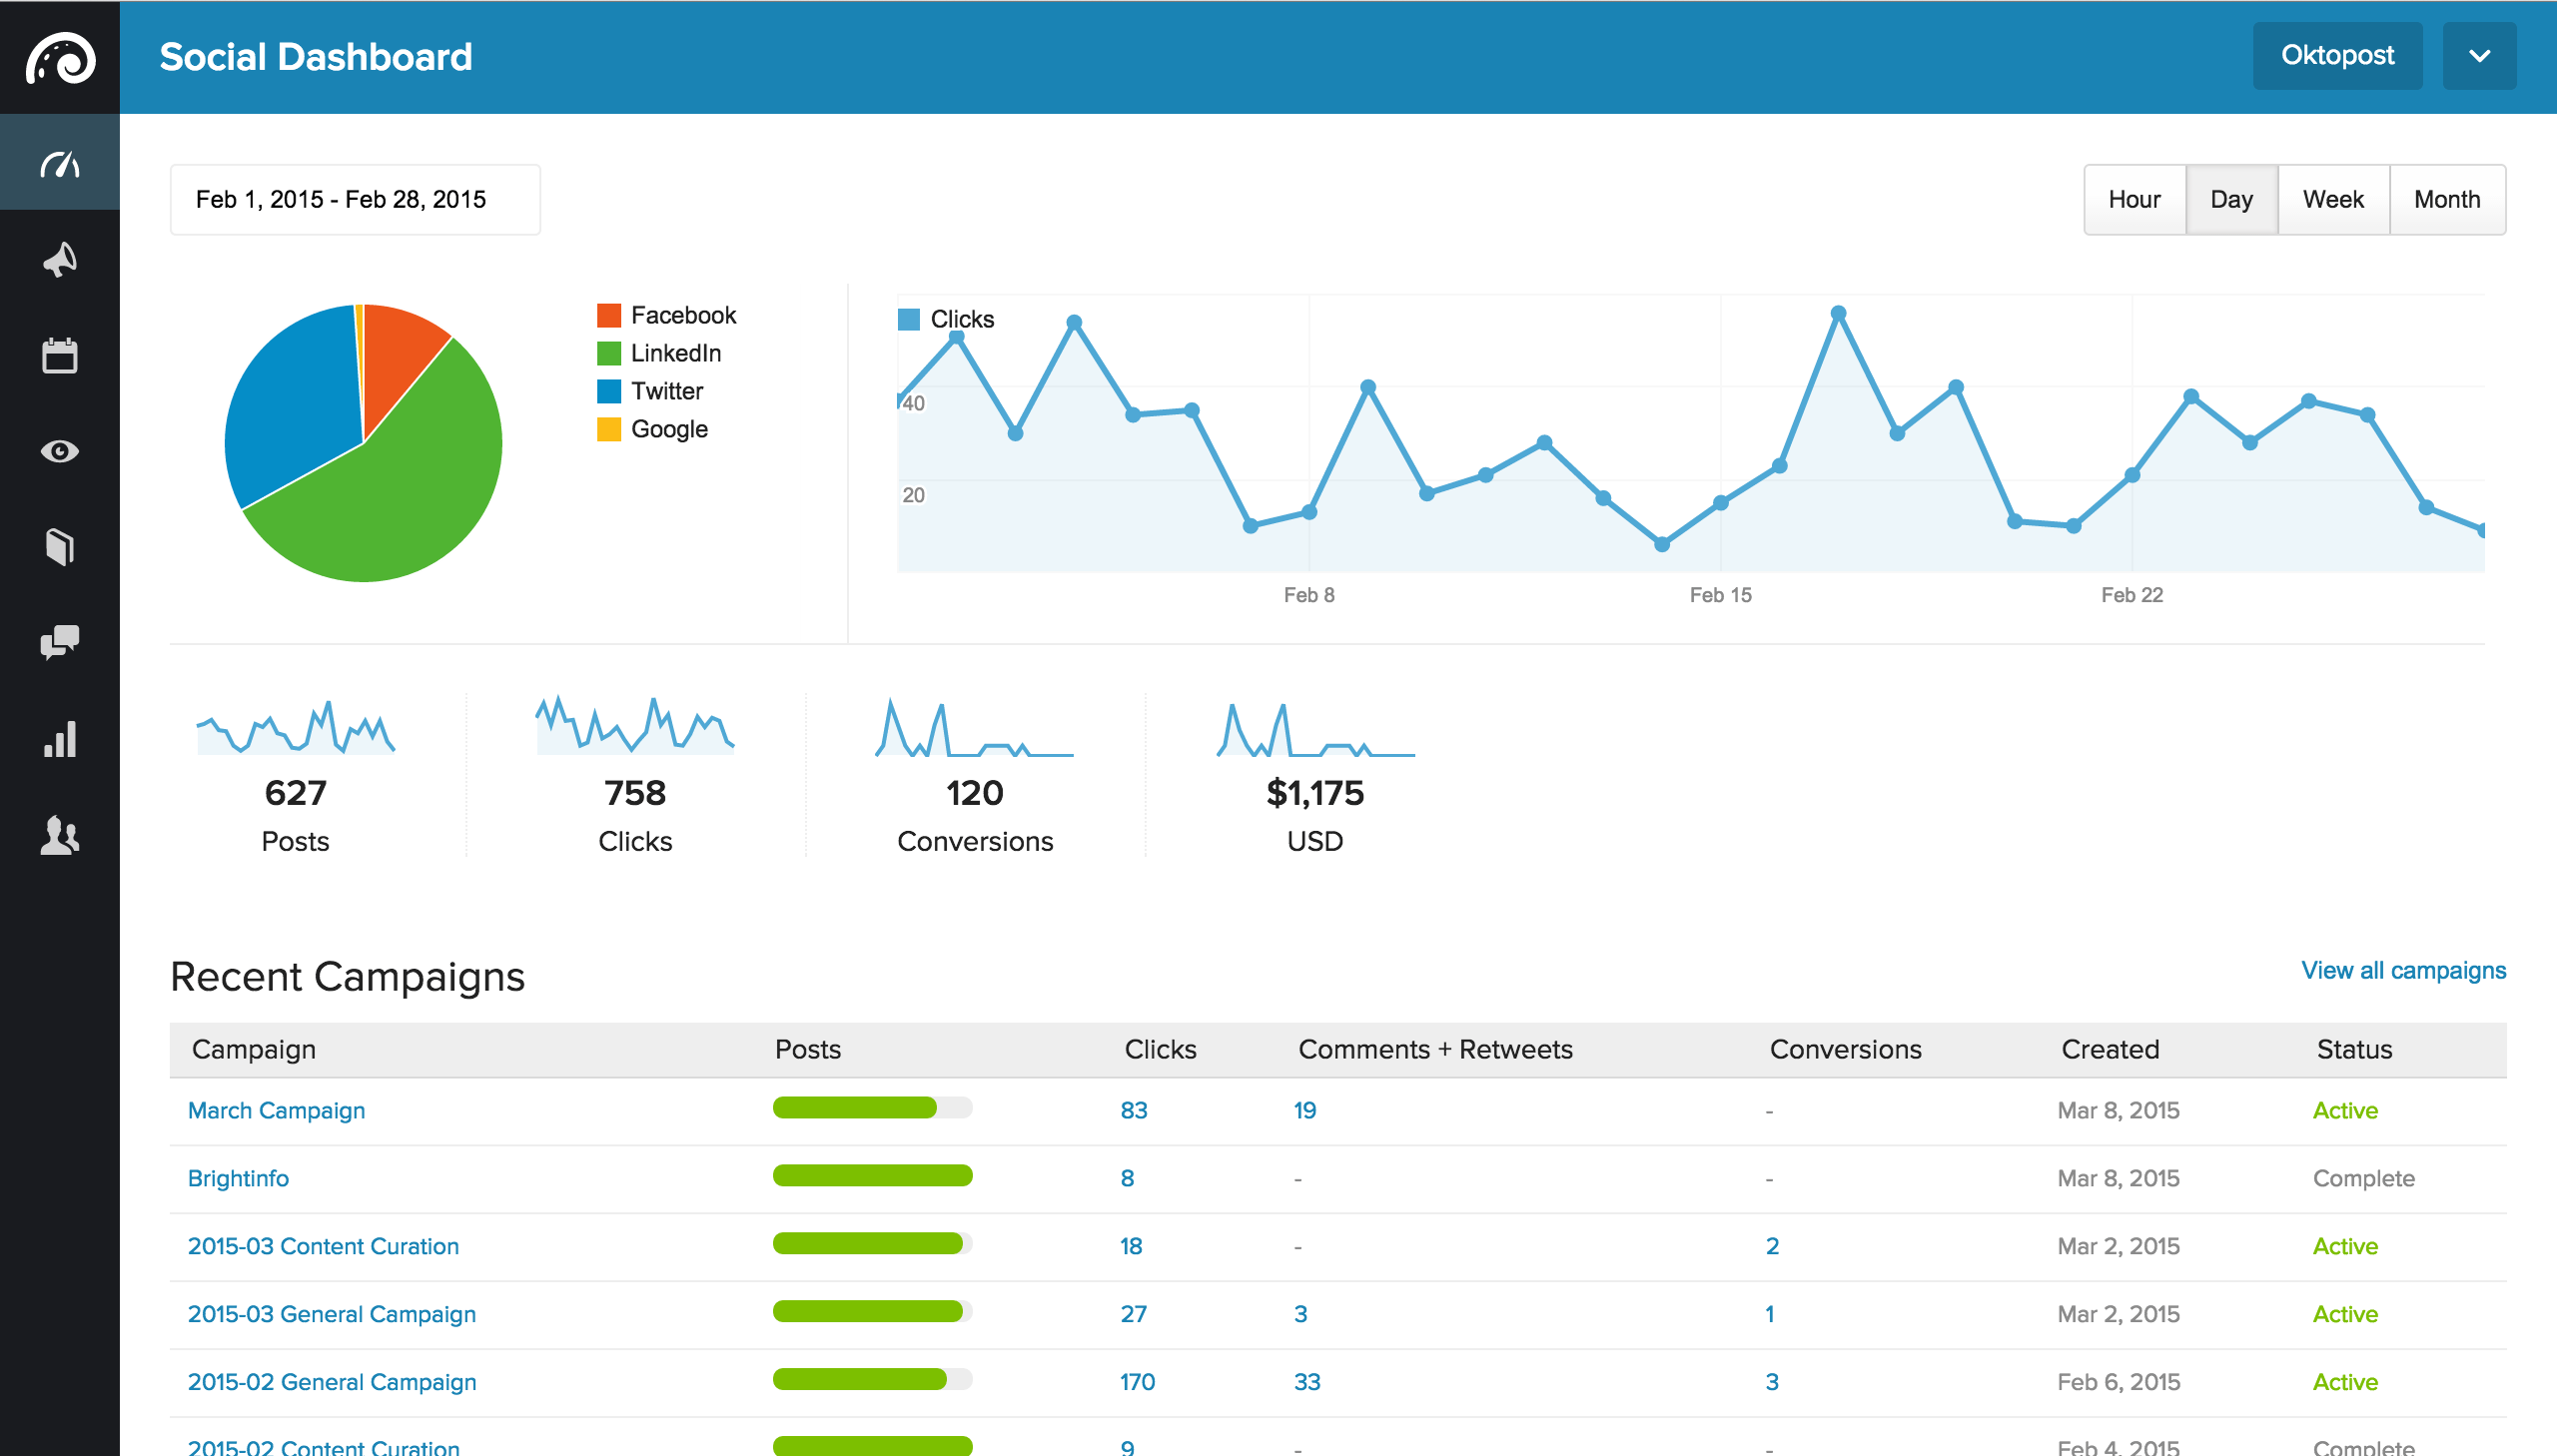 Example of a social lead generation dashboard from Oktopost.